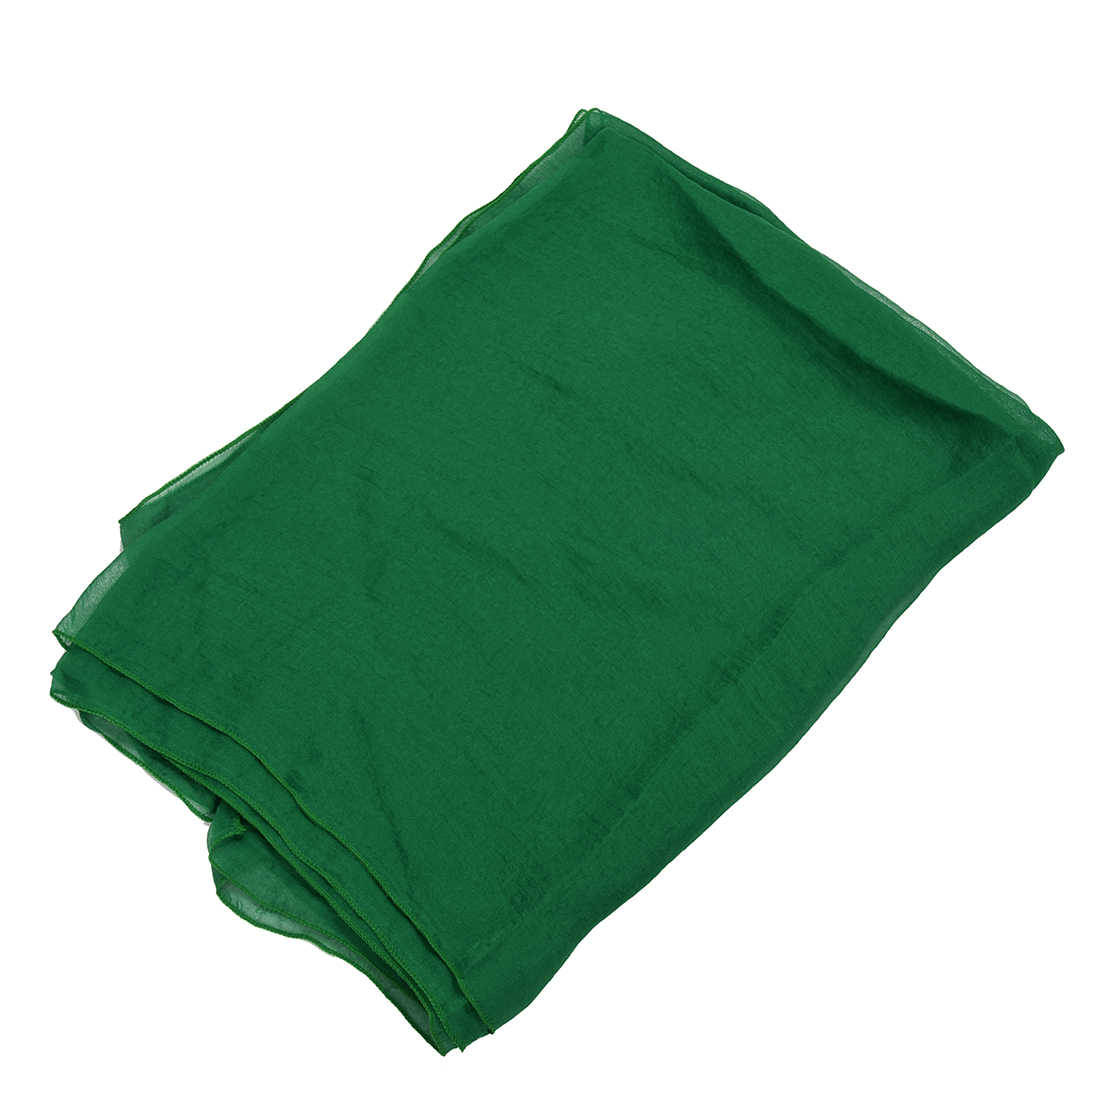 SYB 2016 NEW Grass Green Trendy Summer Care Solid Color Scarf Shawl For Women